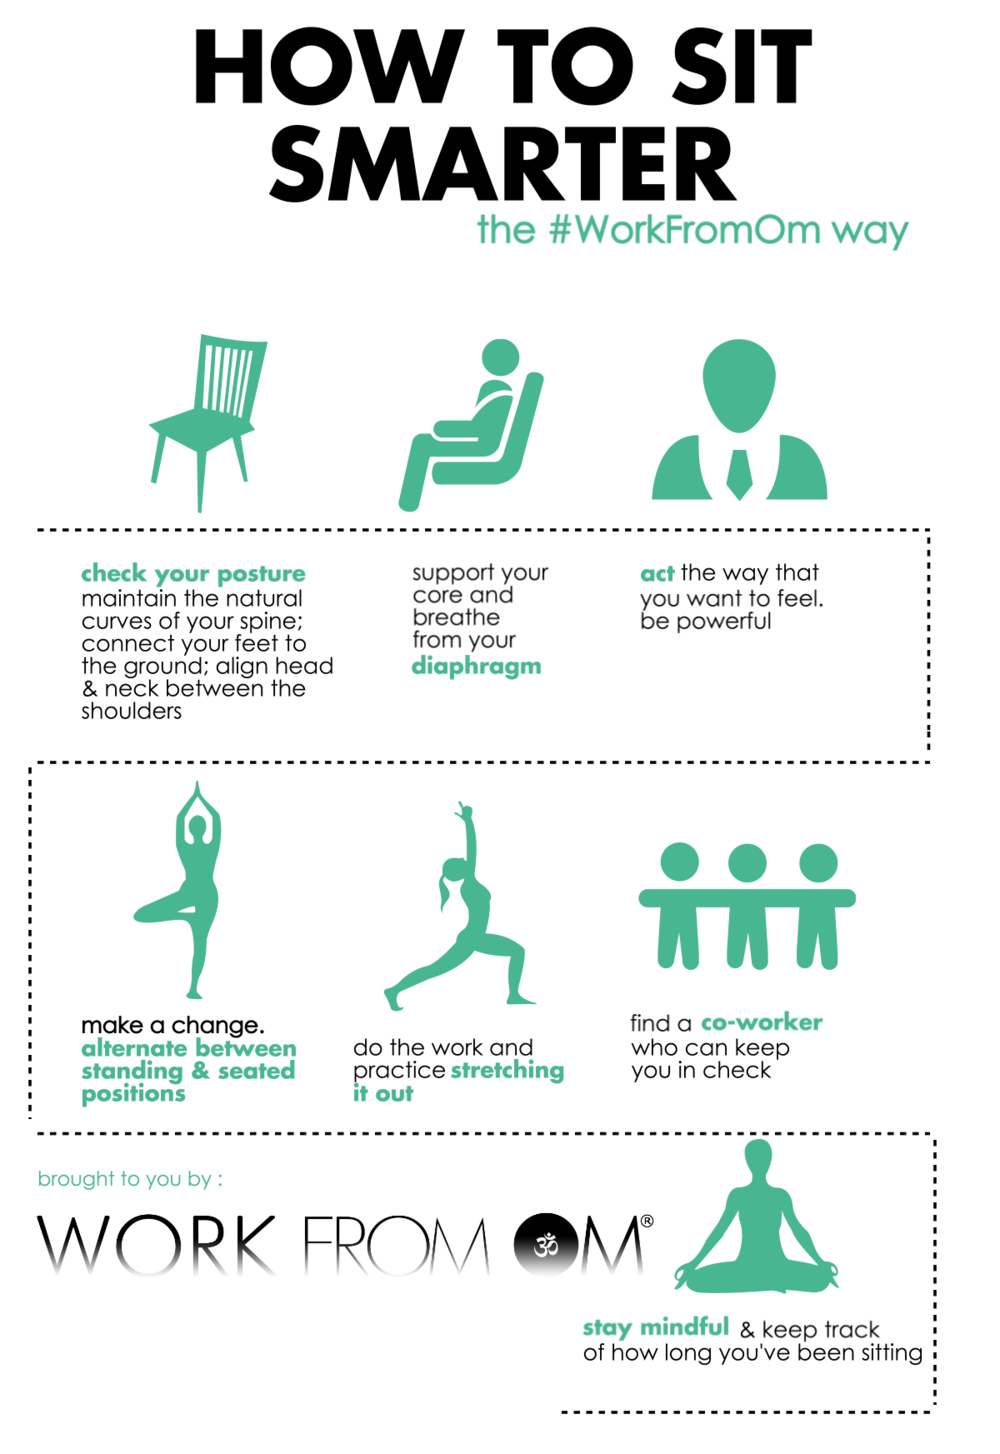 How To Sit Smarter Sydney Corporate Yoga